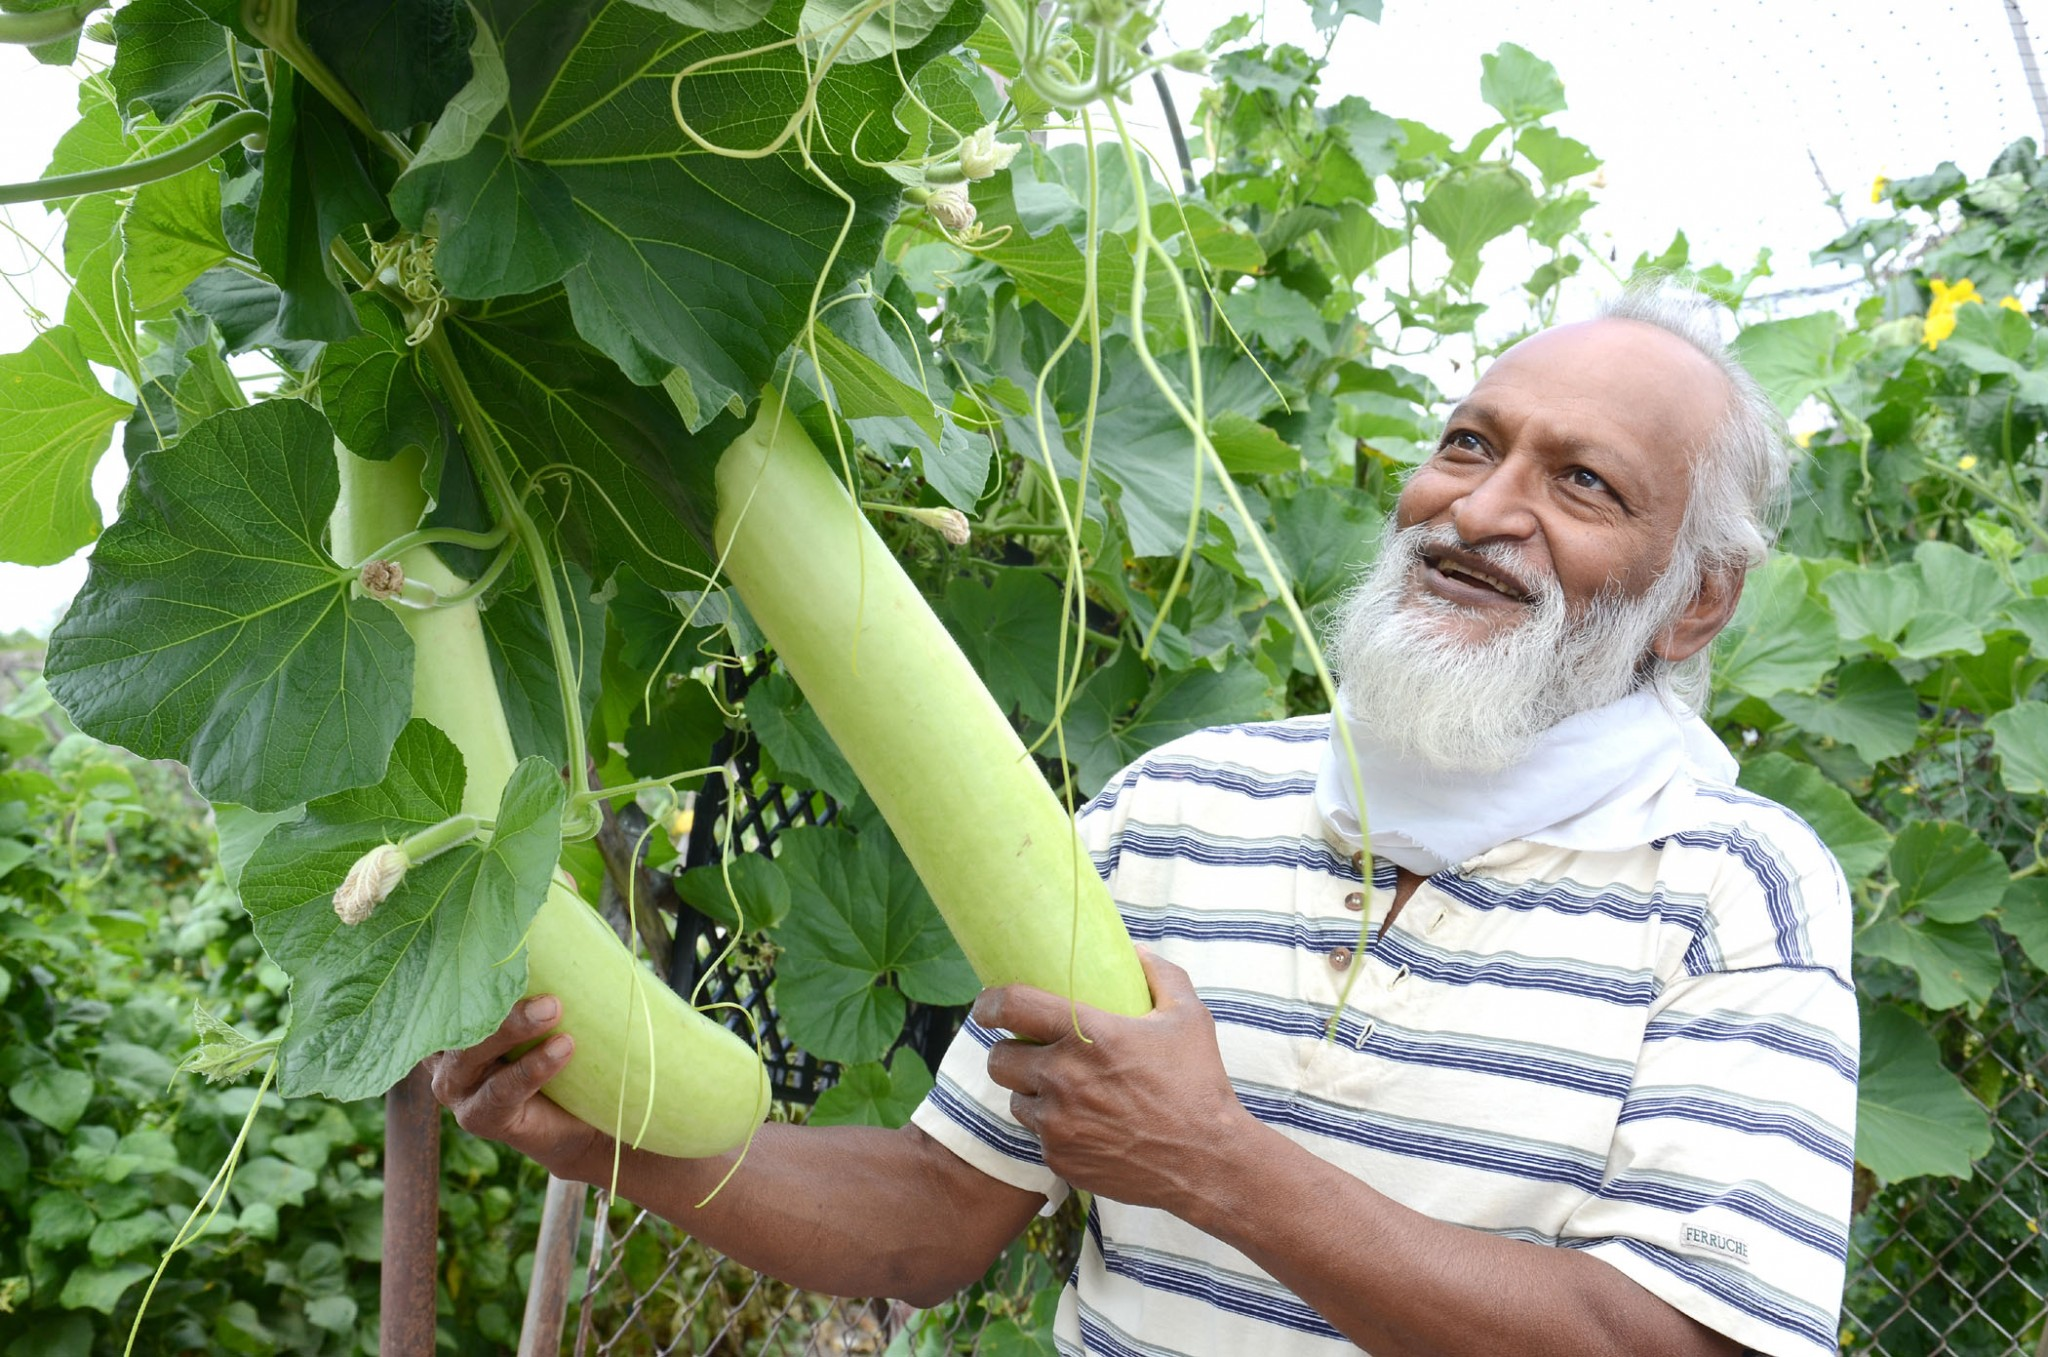 Prakash Thombre with Kadhu, a Bottle Gourd, one of the rare vegetables he grows on his plot in Oregon. (Press file photo by Ken Grosjean)